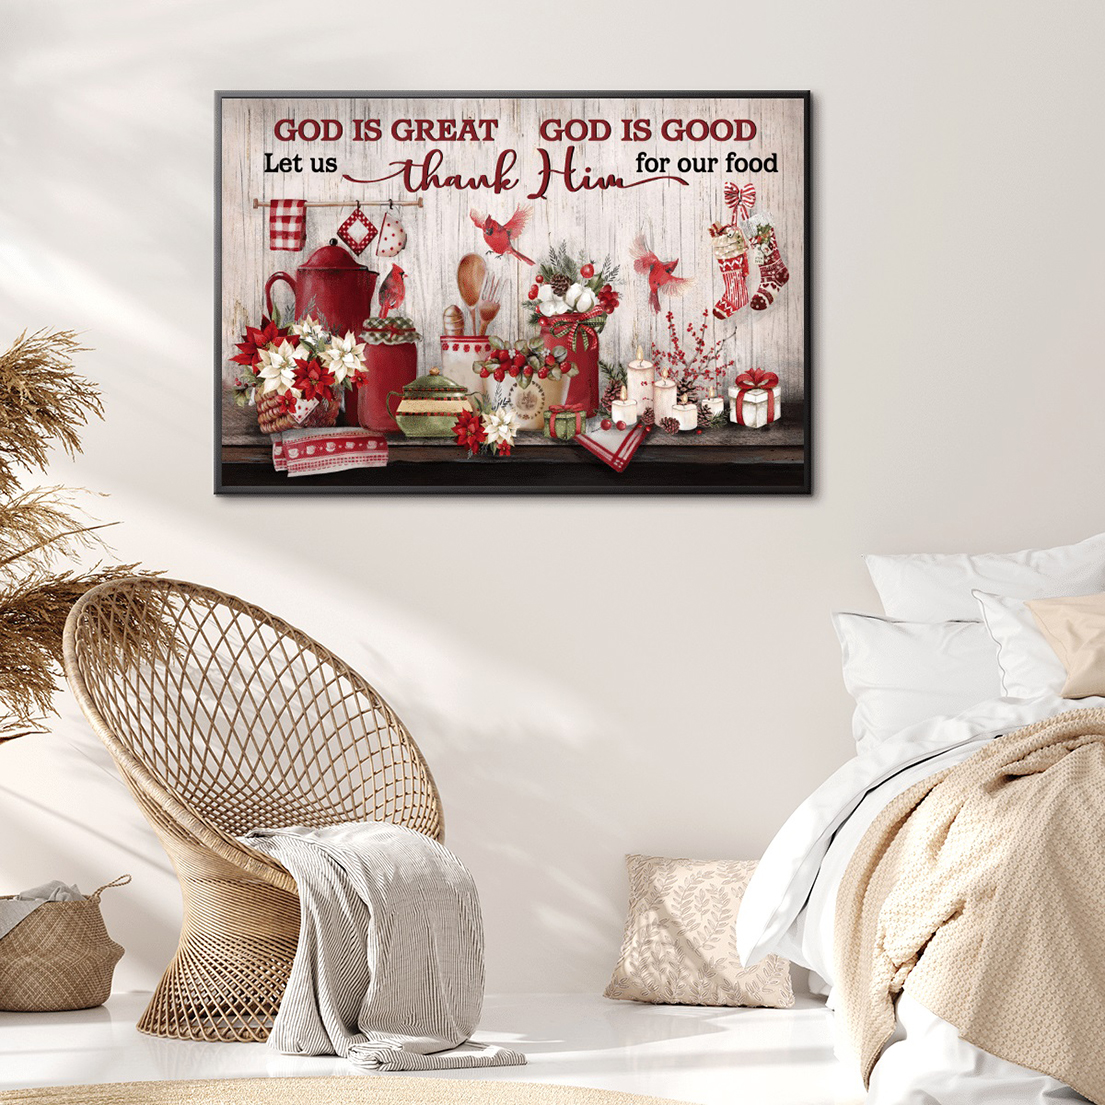 God is great god is good canvas and poster